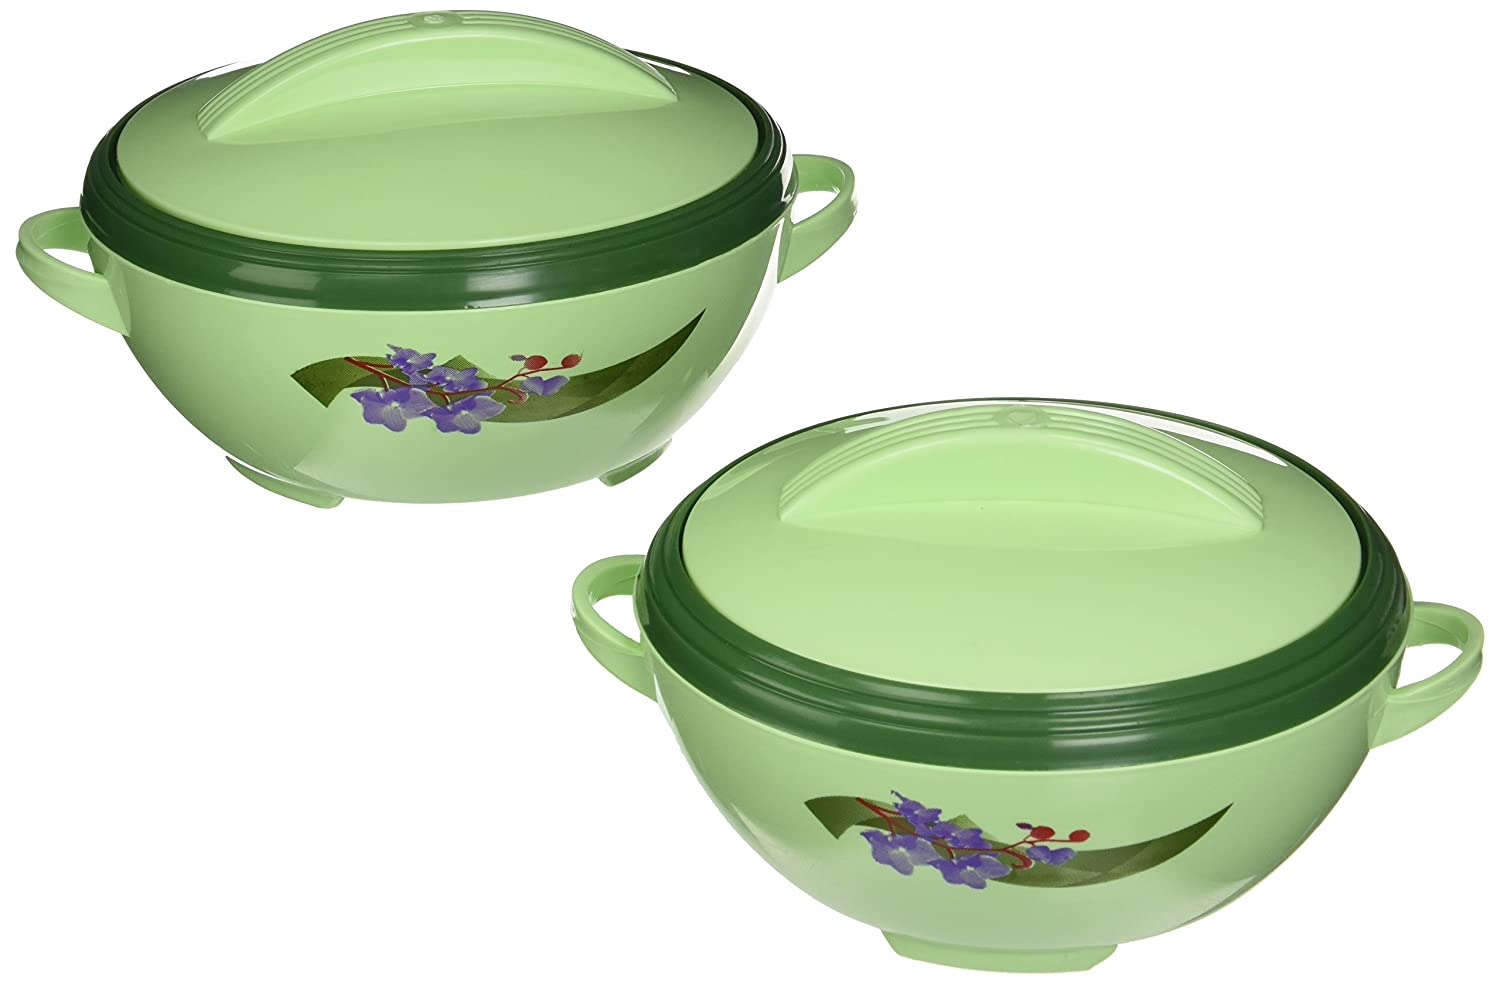 Cello Buffet Insulated Casserole Food Server Hot Pot (2-Piece Set) Buffet-2